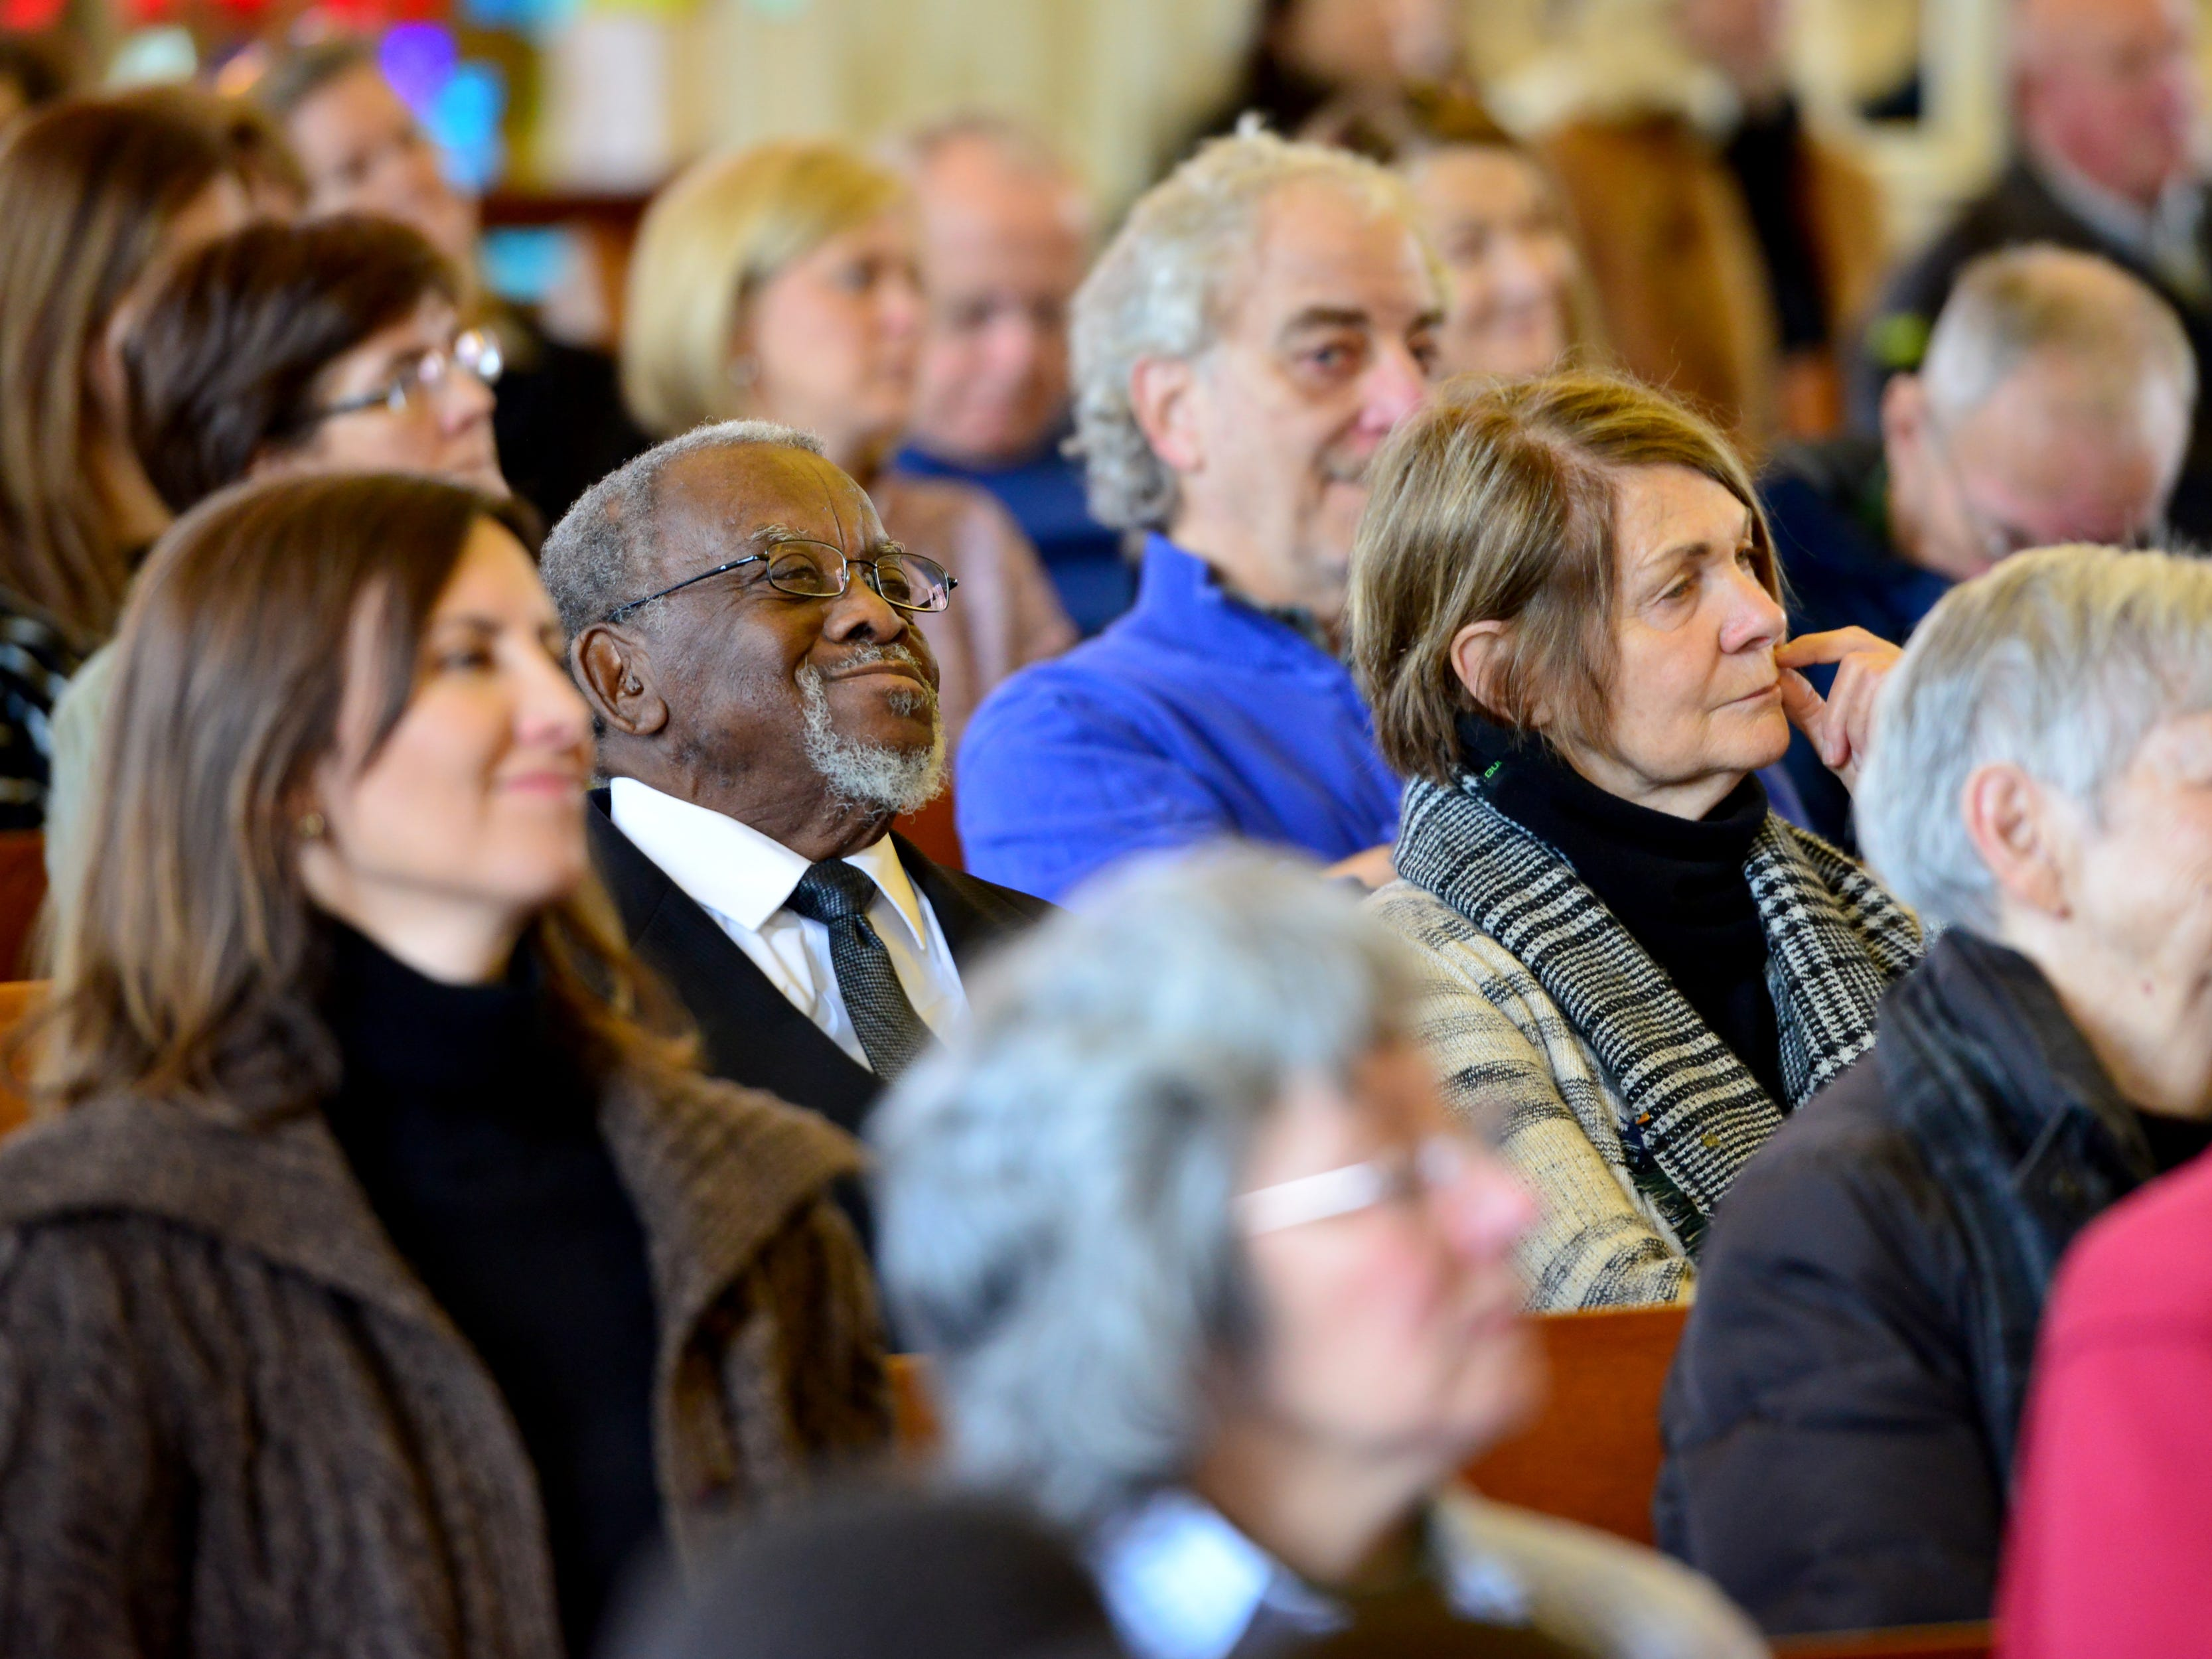 The Ridgewood United Methodist Church held its 37th year of honoring Dr. Martin Luther King, Jr. in Ridgewood, N.J.